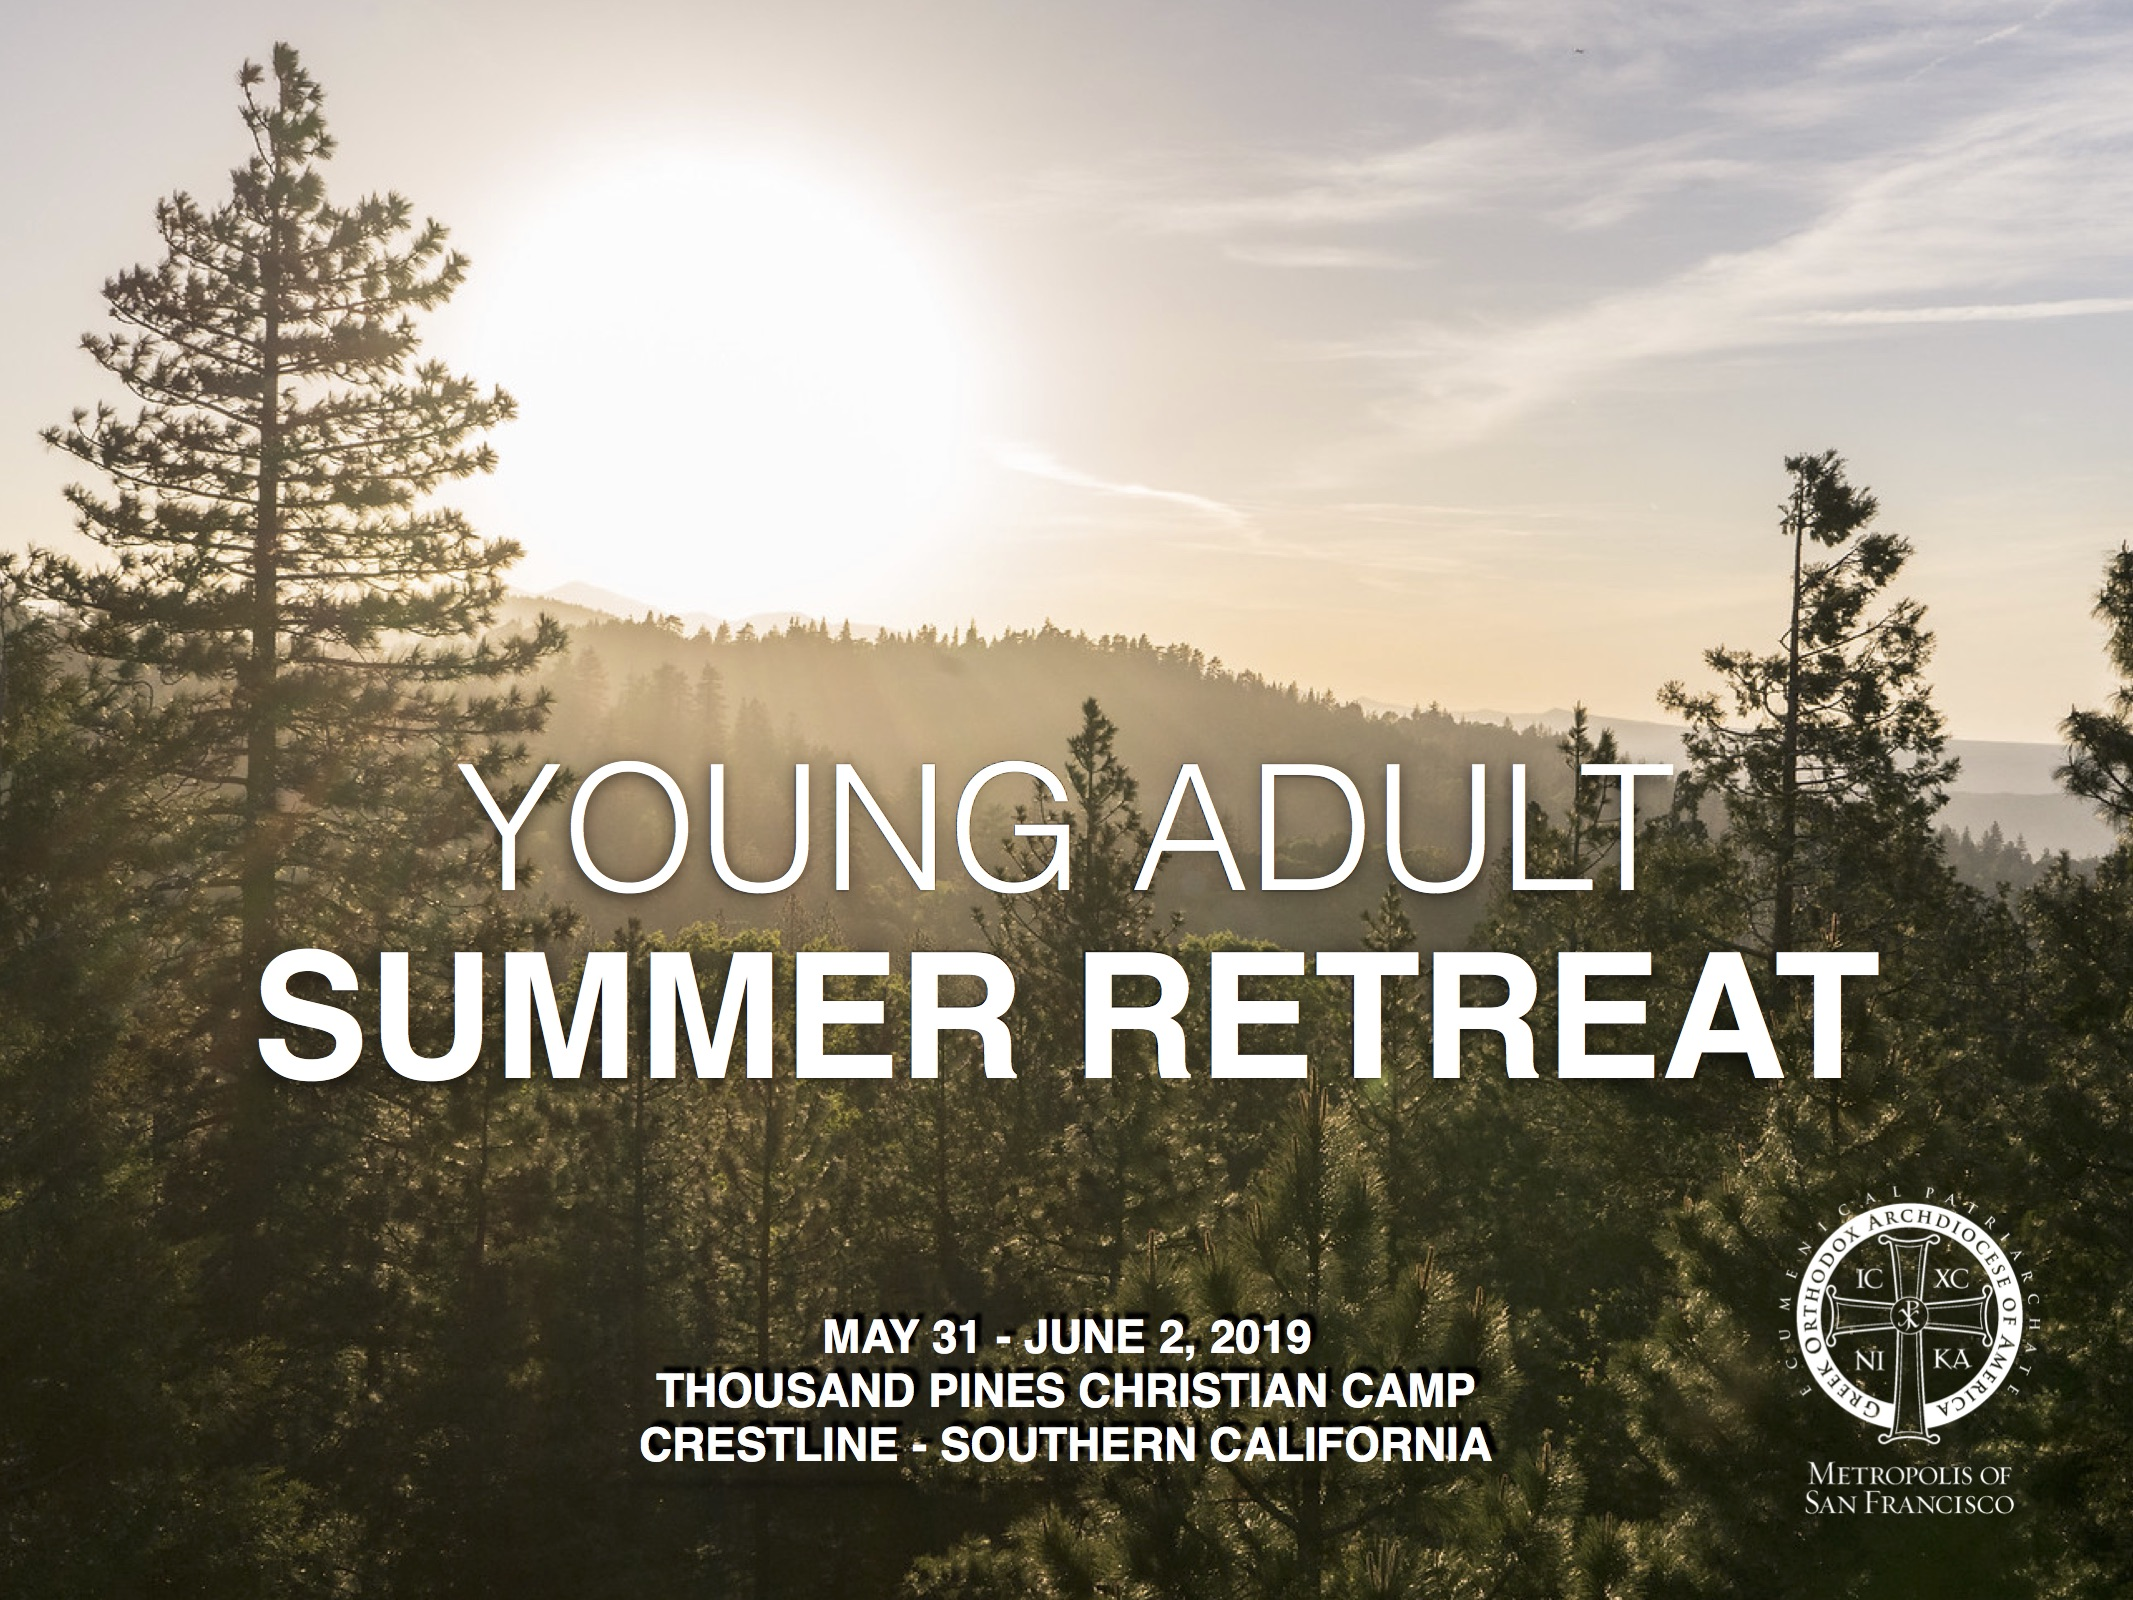 Young Adult Summer Retreat 2019-1.jpg